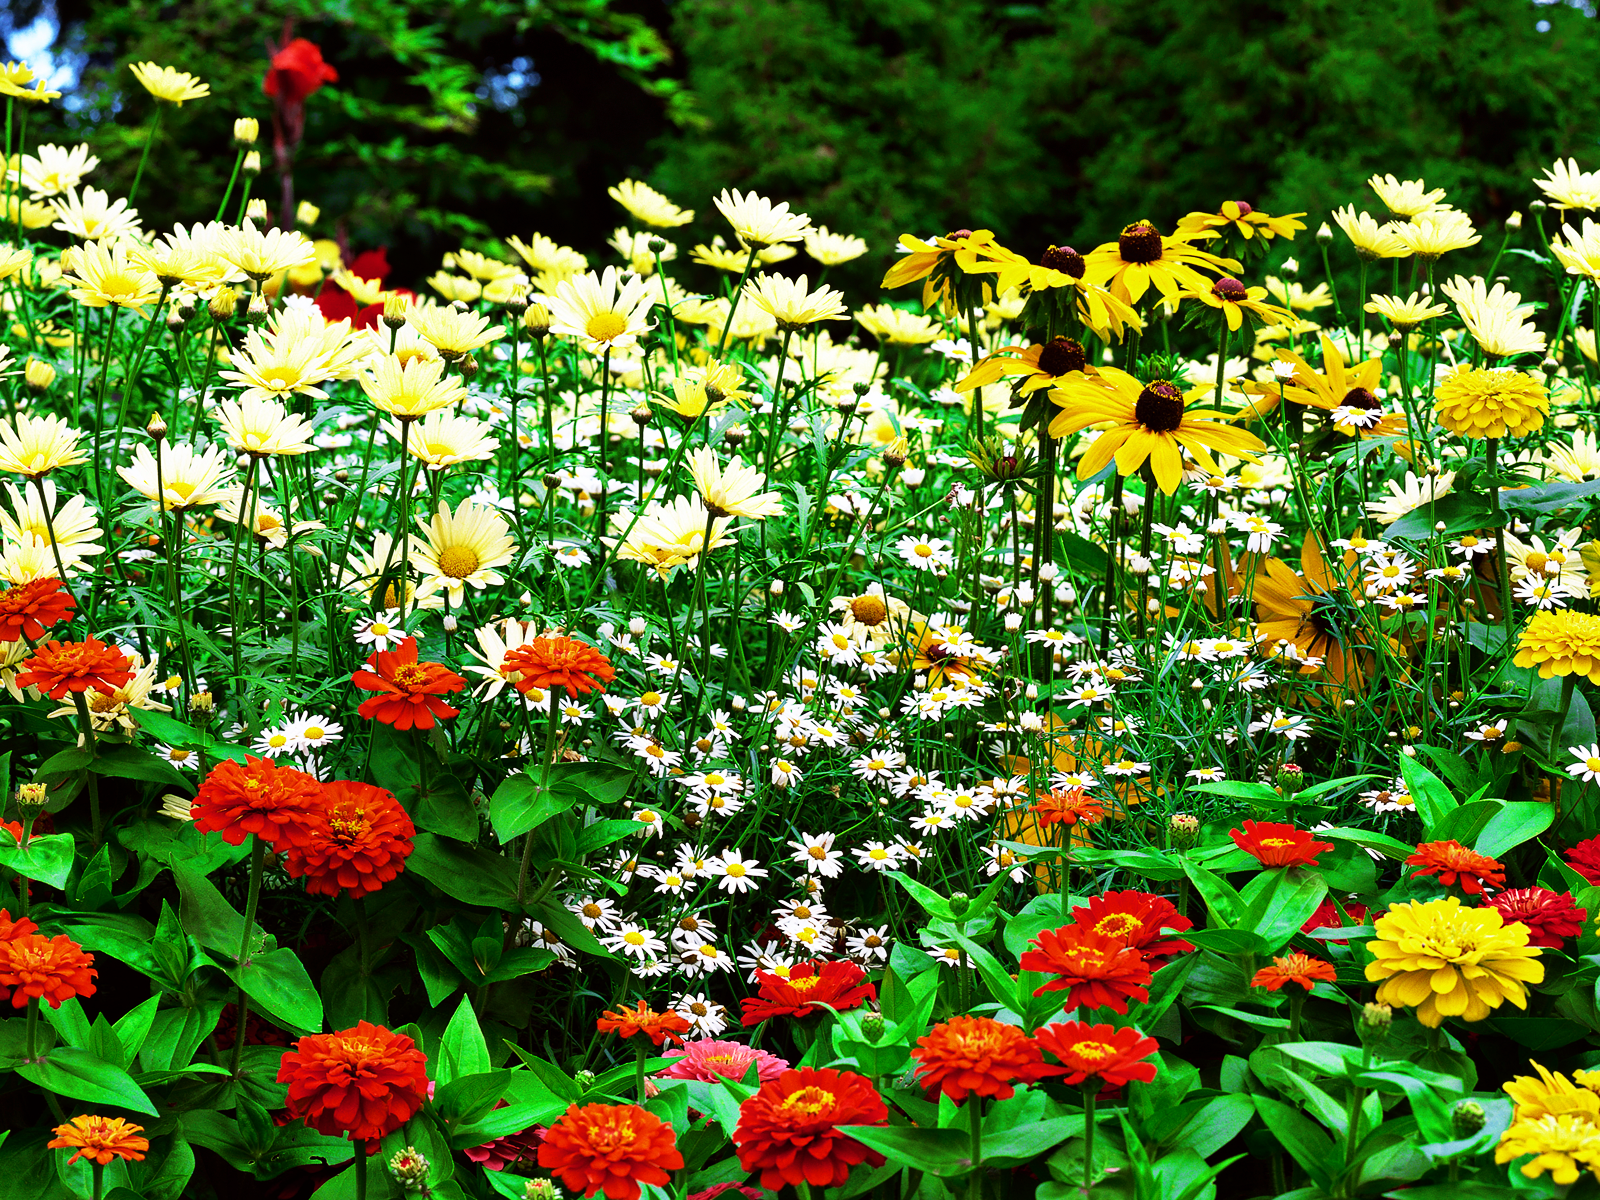 Wallpapers Dekstop 4 U: Flower Garden Wallpaper